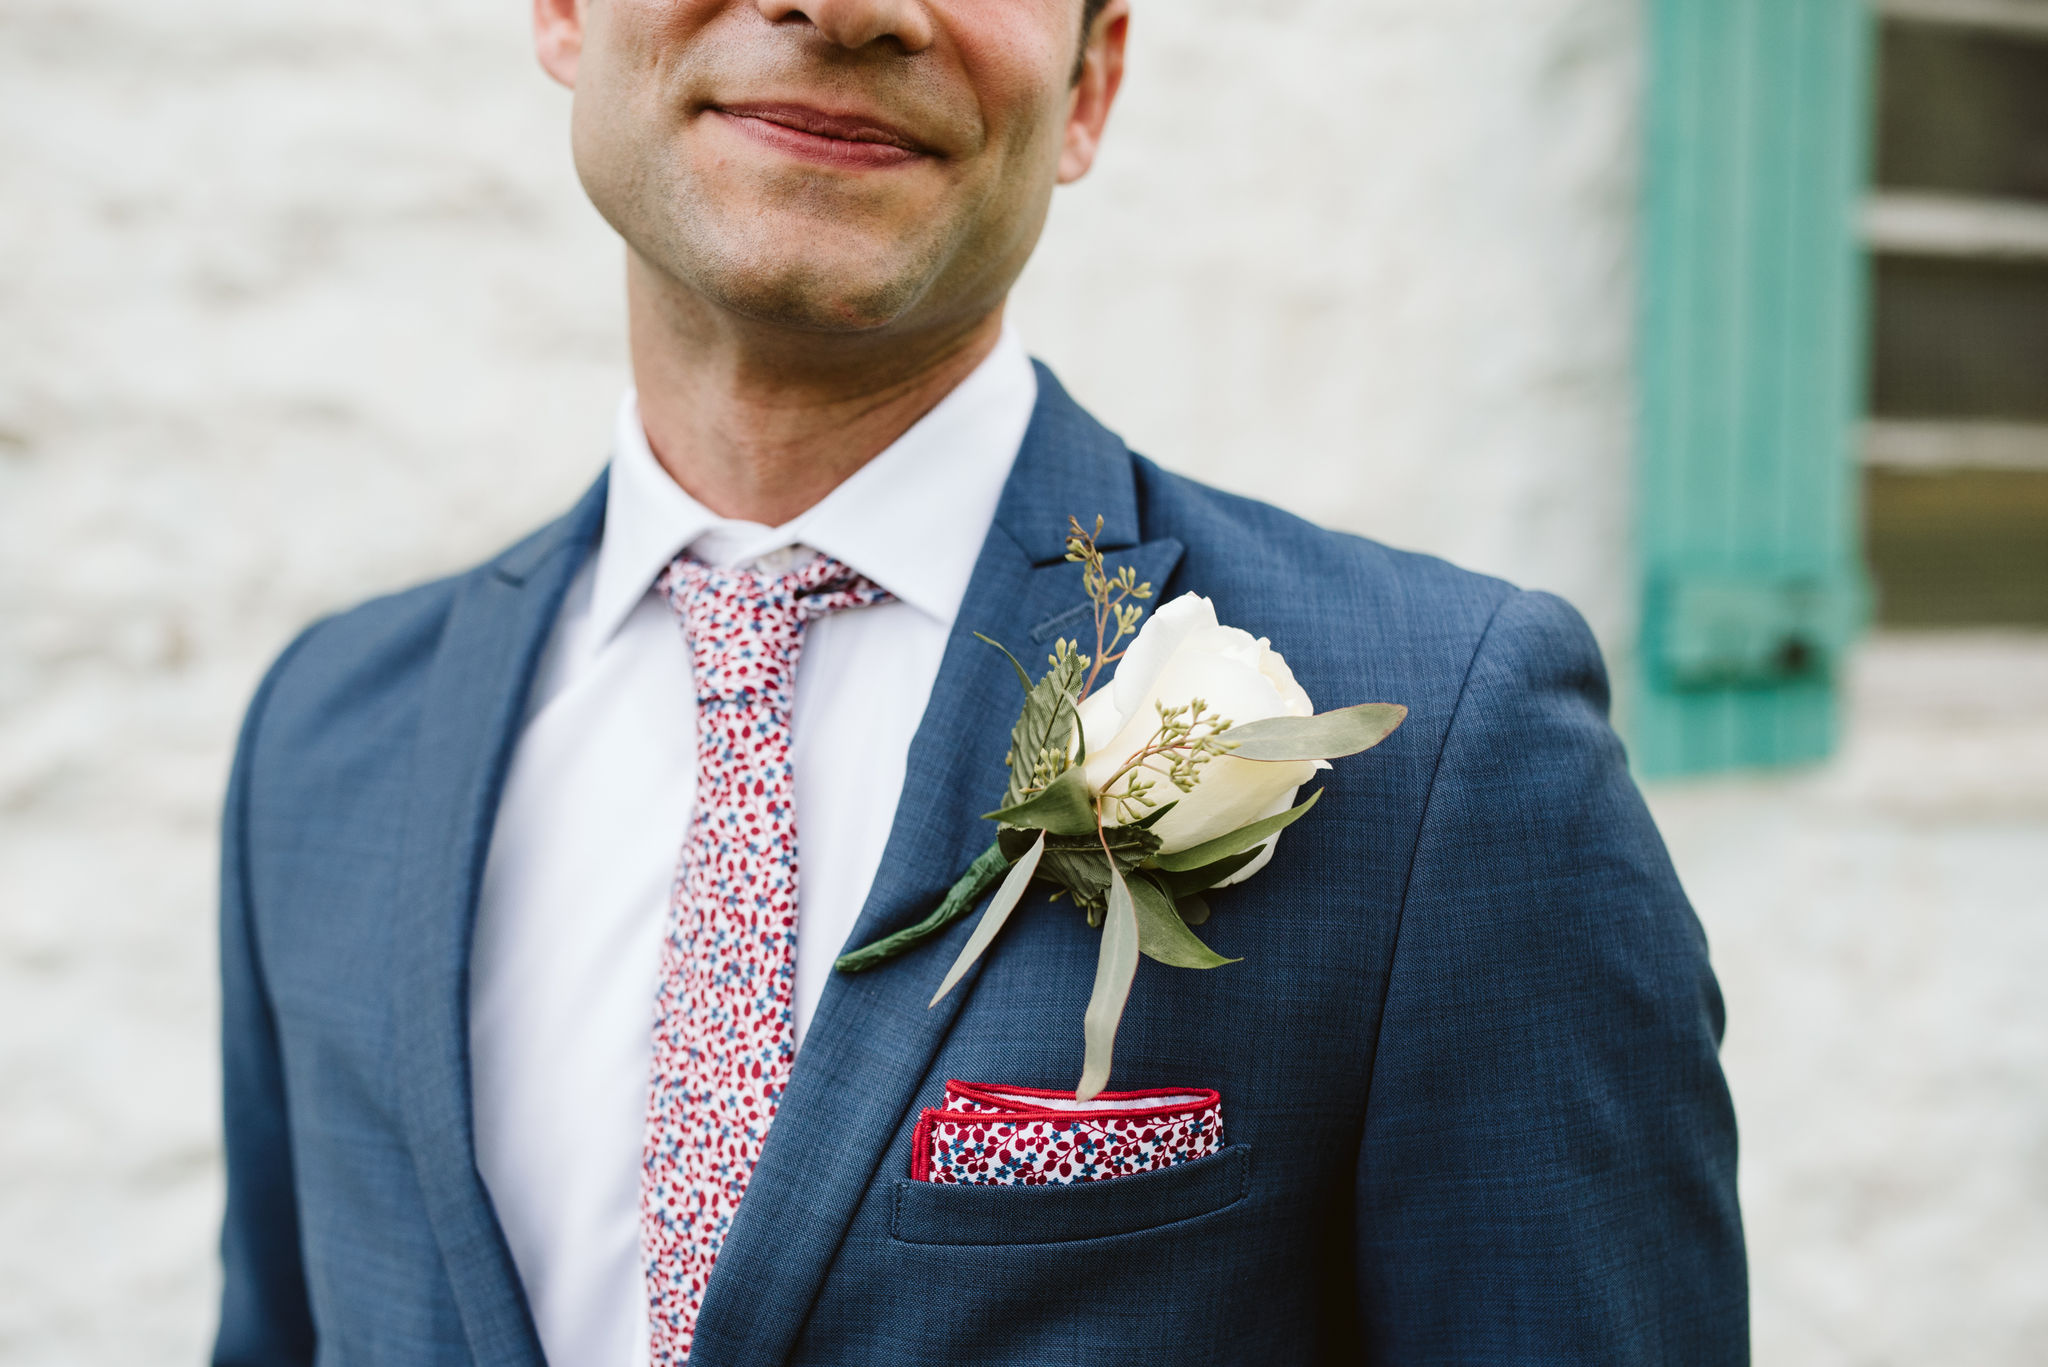 Phoenix Maryland, Baltimore Wedding Photographer, Eagle's Nest Country Club, Classic, Romantic, White Boutonniere, Knotty Tie Pocketsquare